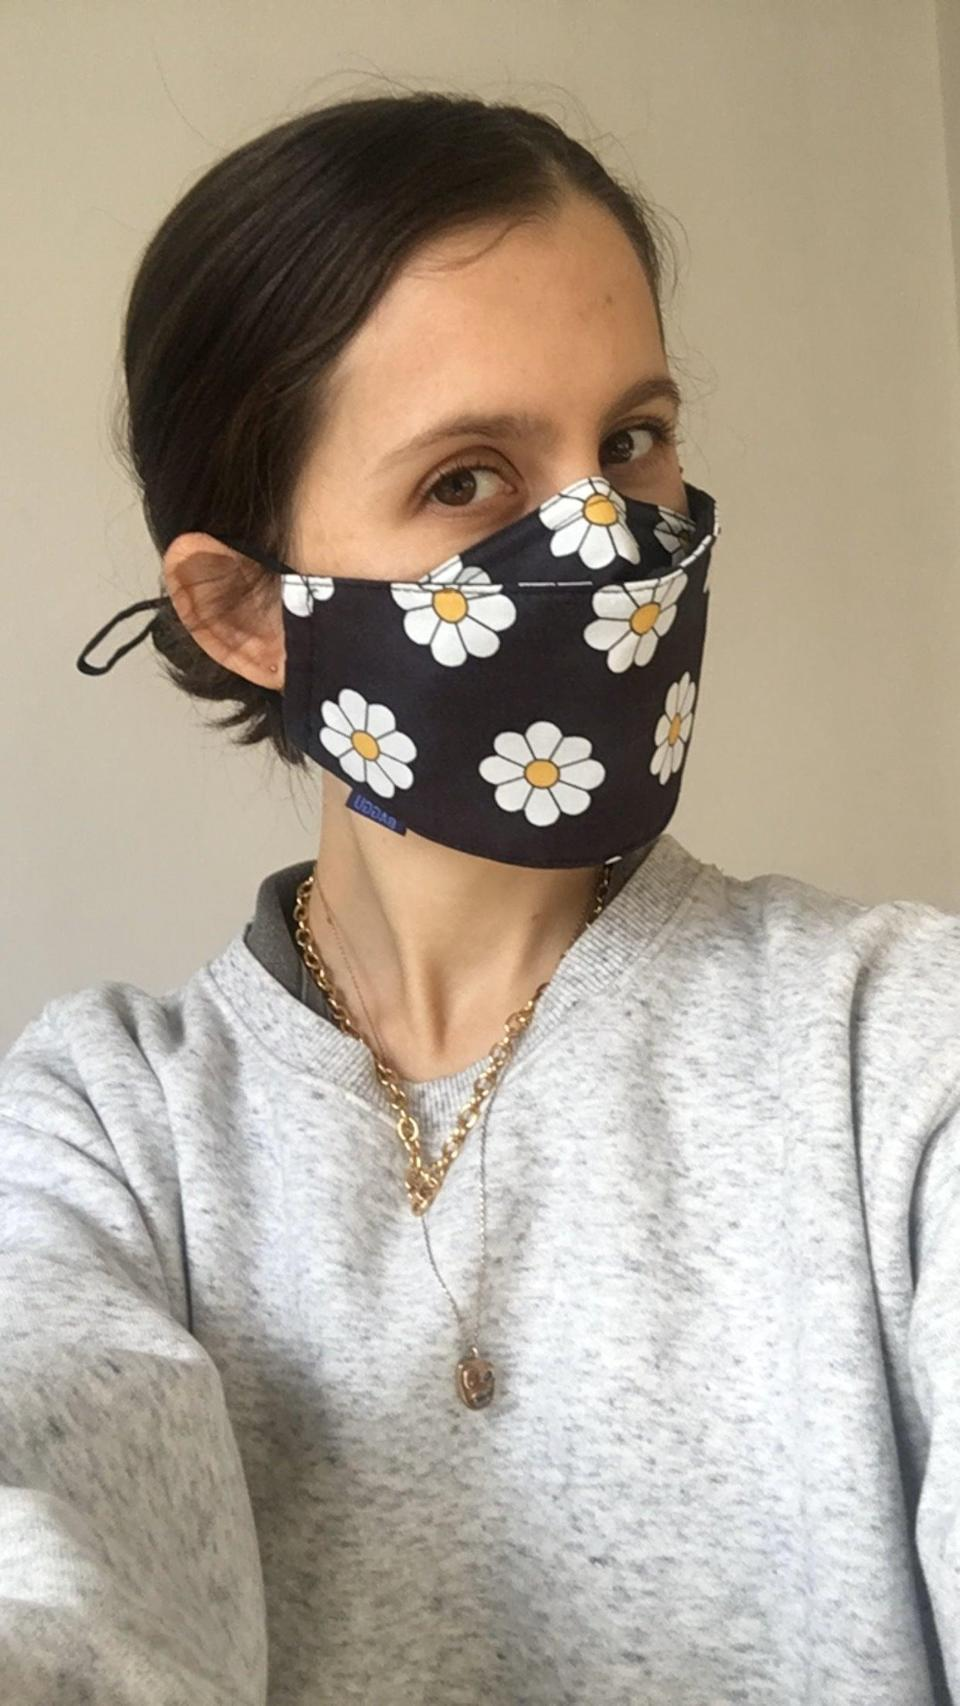 """<h2>Baggu Fabric Mask Set</h2><br><strong>Last Month's Top MVP:</strong><br>""""One thing that covid has taught me about myself is that I apparently have a really small face? I've ordered probably 8 different masks/styles and they are all too big and fall off my face. I have one cotton mask where I've knotted the ear straps so it fits properly, but I've been sick of wearing the same dreary black fabric over my face every day. I decided to give these Baggu masks a try since they're a different shape than most and have adjustable straps. Success! They fit well and the daisy print makes me smile."""" <em>– Kate Spencer, Creative & Updates Editor</em><br><br><em>Shop <strong><a href=""""https://baggu.com/collections/reusable-masks/products/fabric-mask-set-loop-daisy-1"""" rel=""""nofollow noopener"""" target=""""_blank"""" data-ylk=""""slk:Baggu"""" class=""""link rapid-noclick-resp"""">Baggu</a></strong></em><br><em>Shop <strong><a href=""""https://amzn.to/3pYxyPn"""" rel=""""nofollow noopener"""" target=""""_blank"""" data-ylk=""""slk:Amazon"""" class=""""link rapid-noclick-resp"""">Amazon</a></strong></em><br><br><strong>Baggu</strong> Fabric Mask Set, $, available at <a href=""""https://go.skimresources.com/?id=30283X879131&url=https%3A%2F%2Fbaggu.com%2Fcollections%2Freusable-masks%2Fproducts%2Ffabric-mask-set-loop-daisy-1"""" rel=""""nofollow noopener"""" target=""""_blank"""" data-ylk=""""slk:Baggu"""" class=""""link rapid-noclick-resp"""">Baggu</a>"""